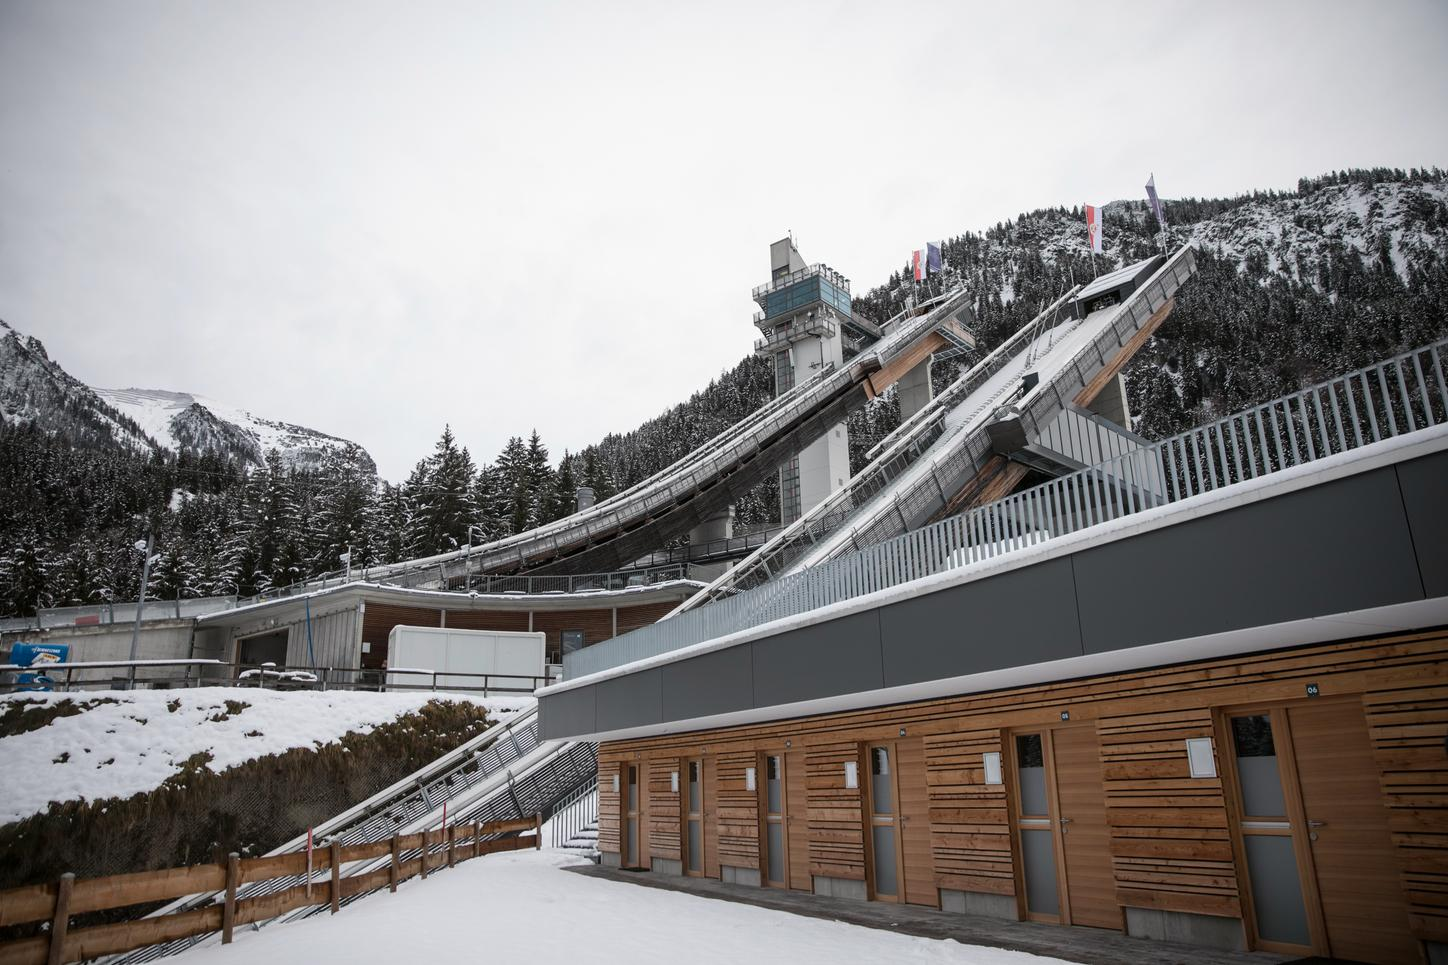 The picture shows the training facility in Oberstdorf in winter